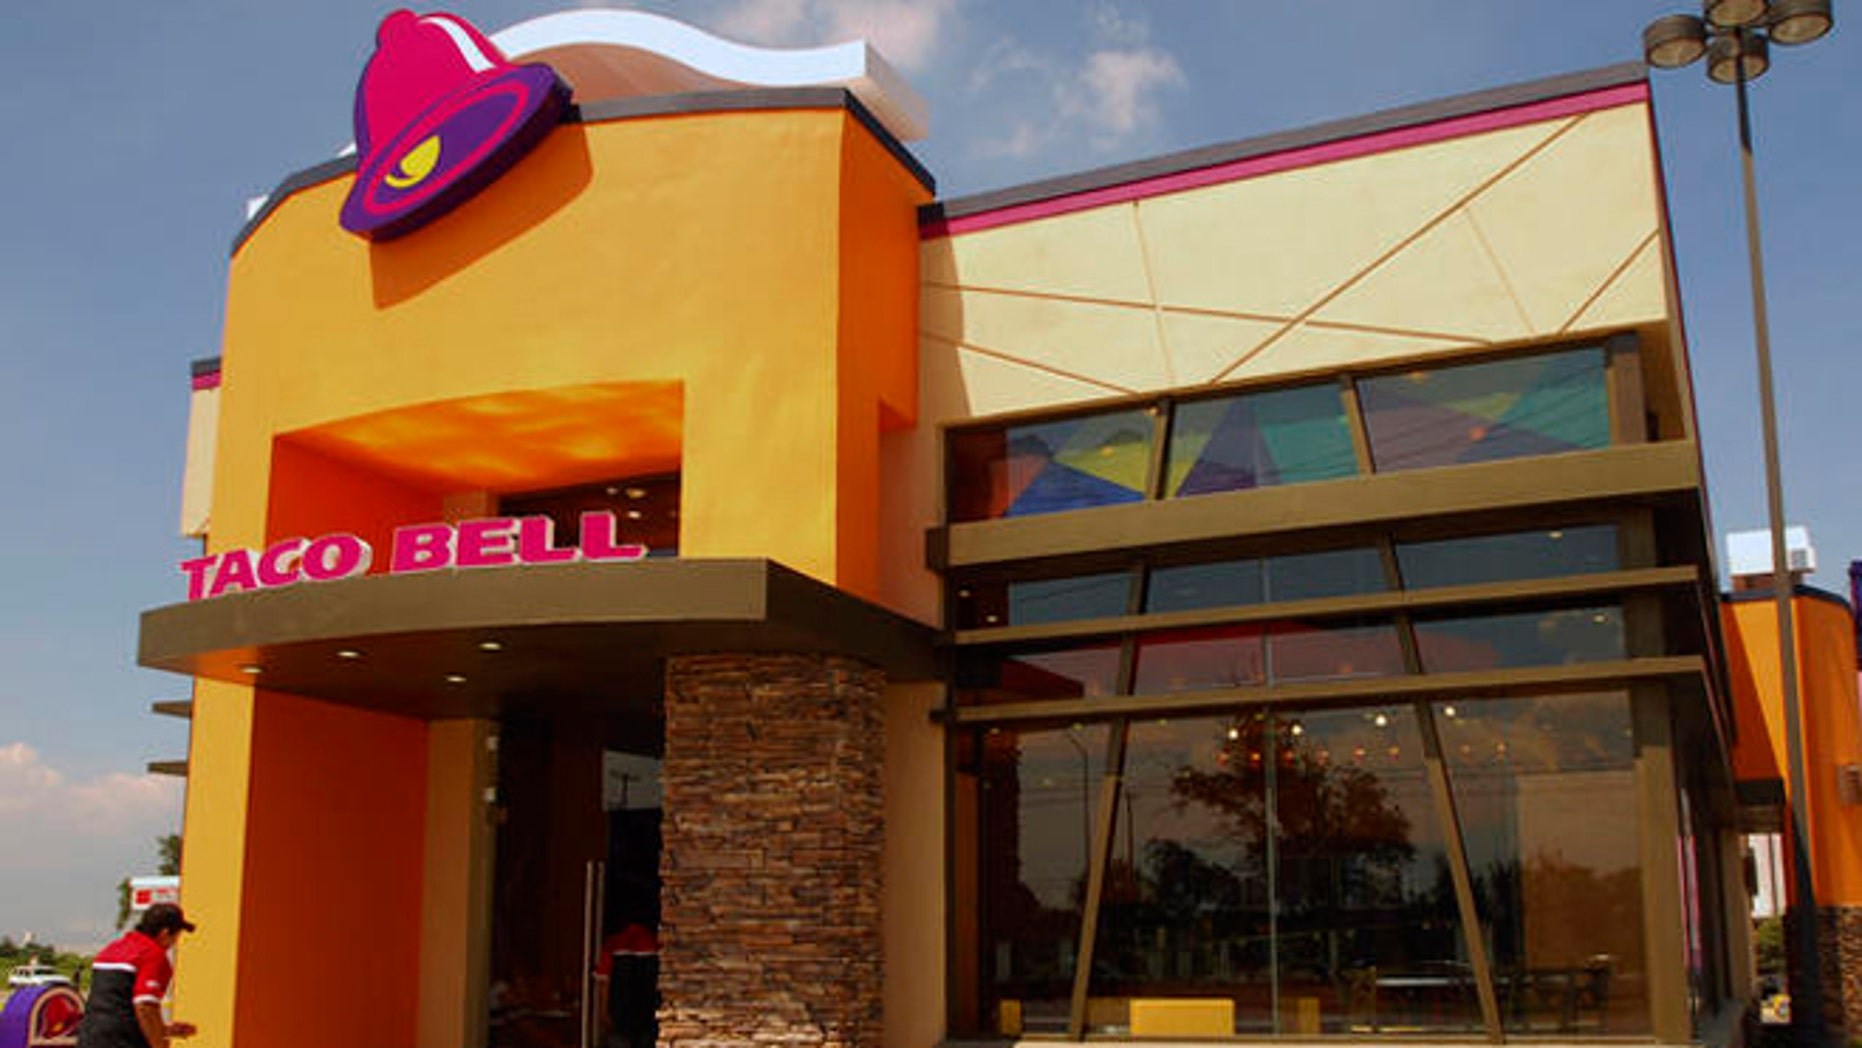 The exterior of a recently opened Taco Bell in Apodaca in northern Mexico, Wednesday, Oct. 3, 2007. Taco Bell is taking on the homeland of its namesake by reopening for the first time in 15 years in Mexico. (AP Photo/Monica Rueda)